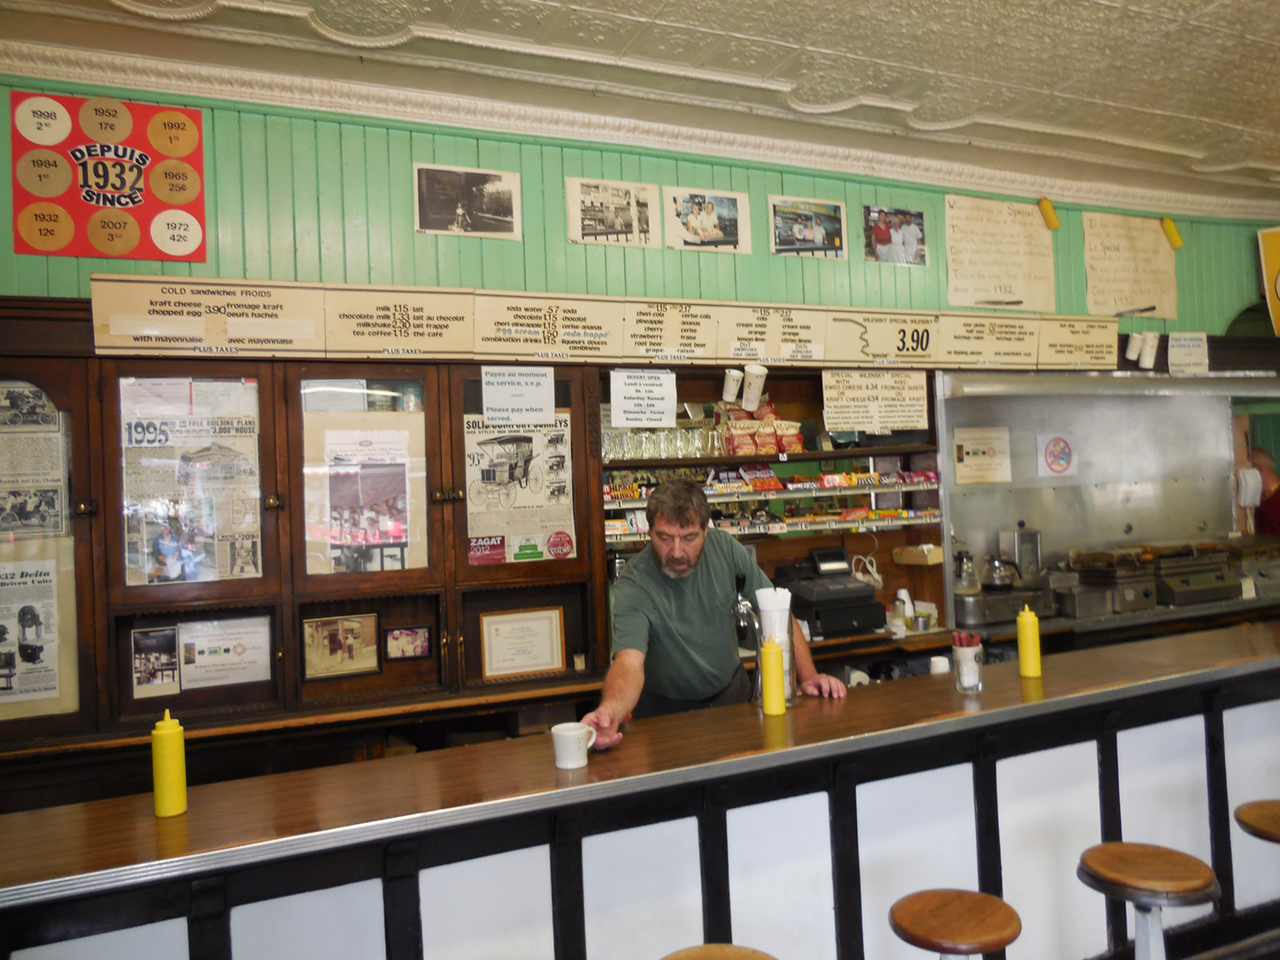 Wilensky's Lunch Counter